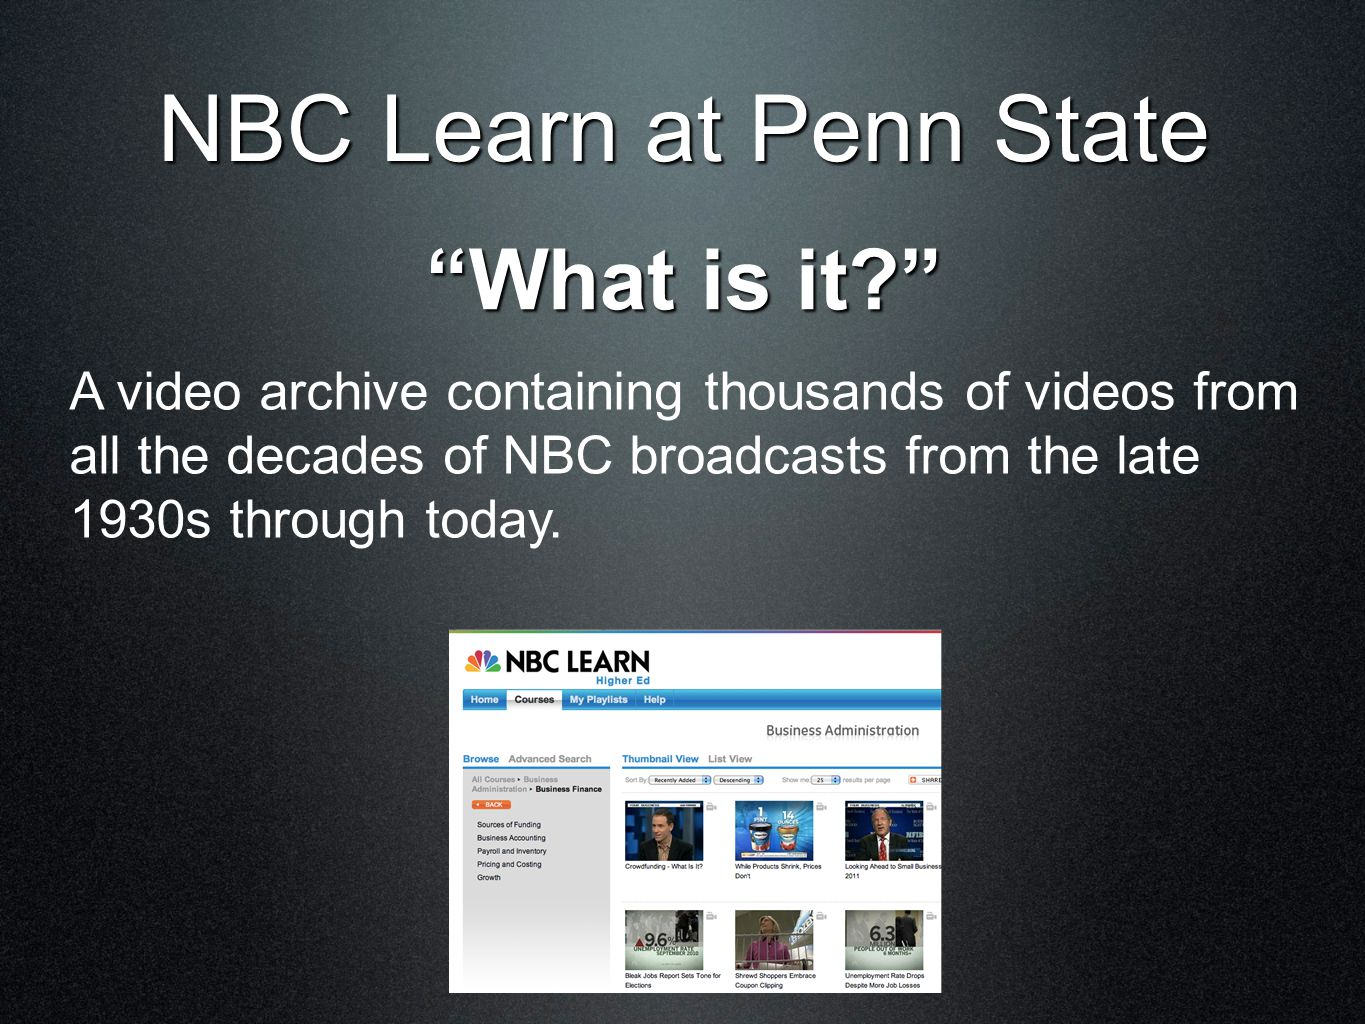 What is it A video archive containing thousands of videos from all the decades of NBC broadcasts from the late 1930s through today.